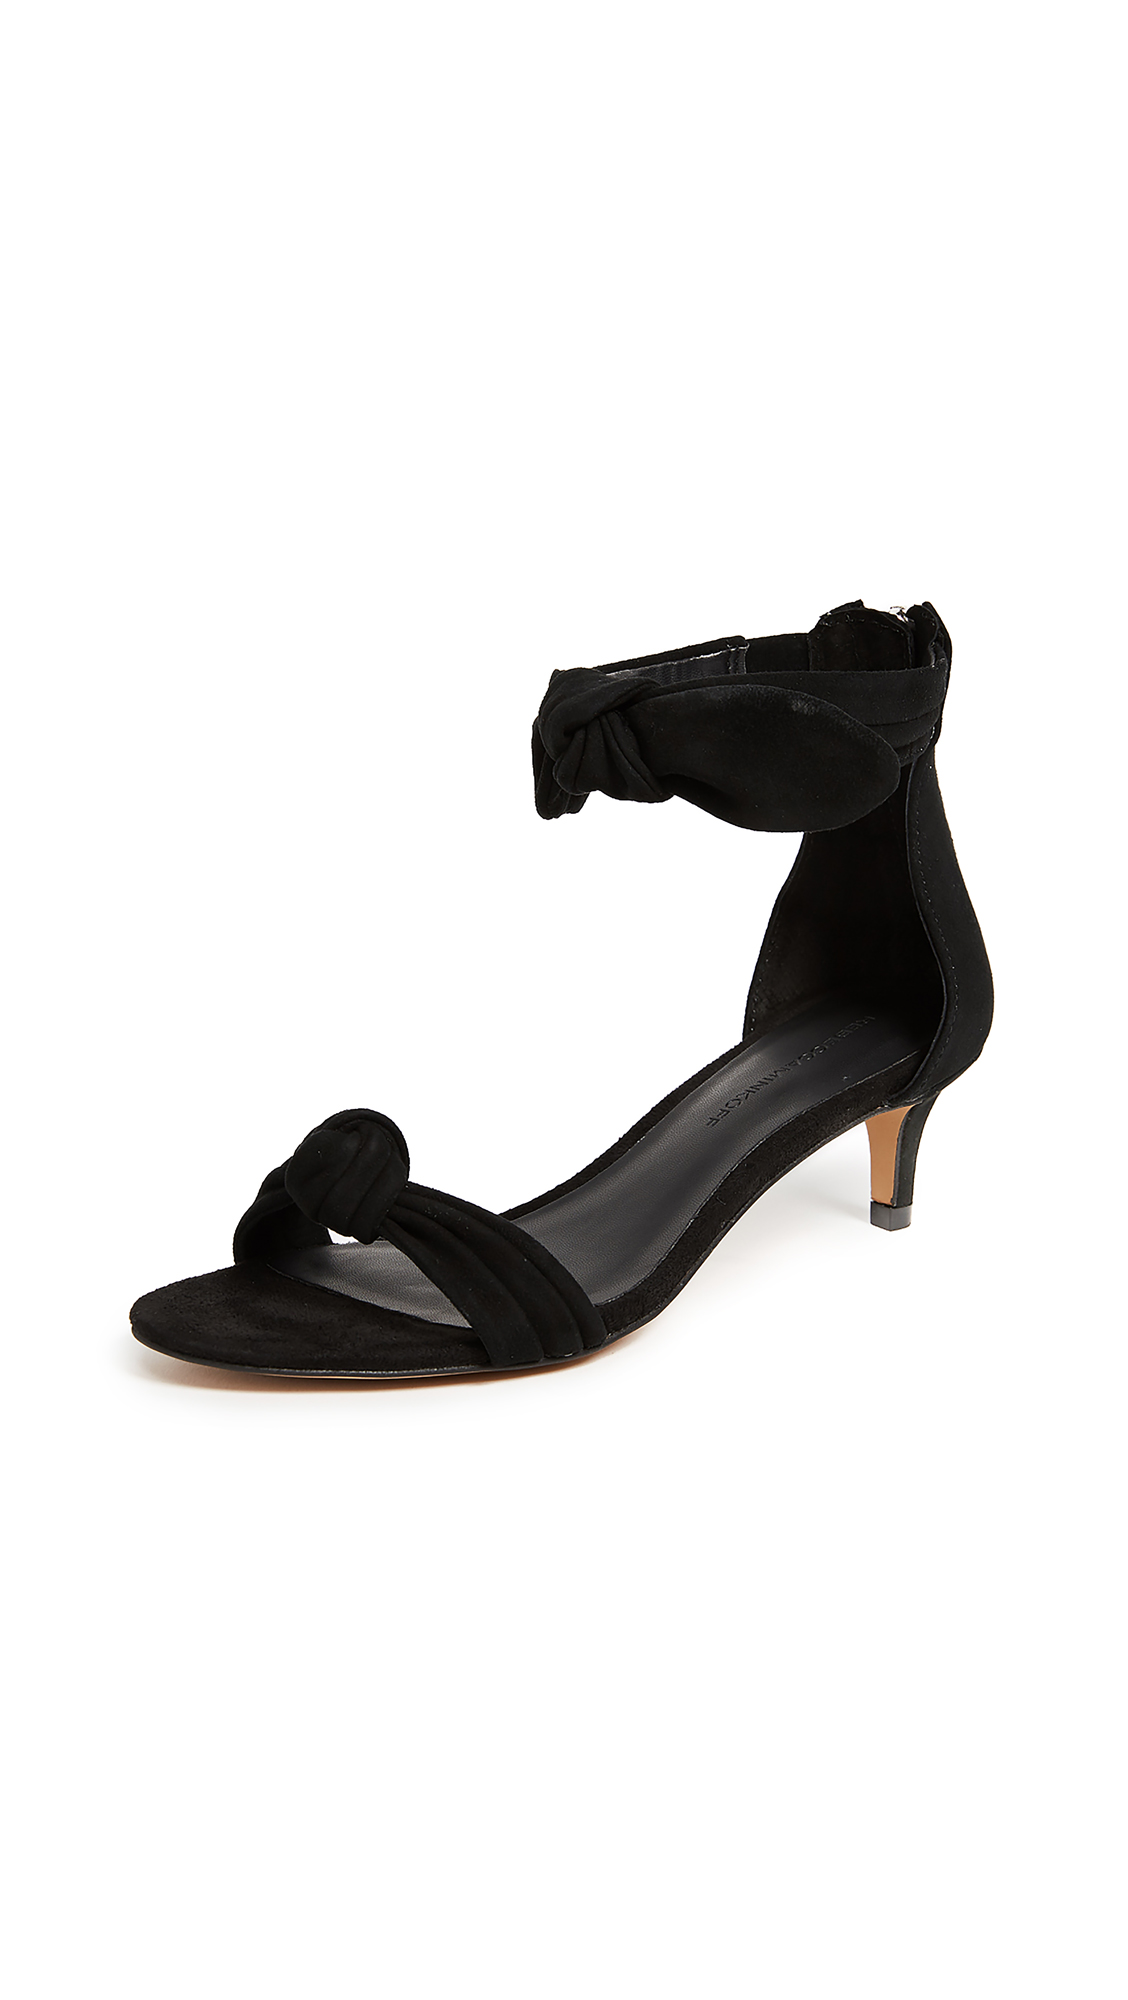 Rebecca Minkoff Kaley Sandals - Black